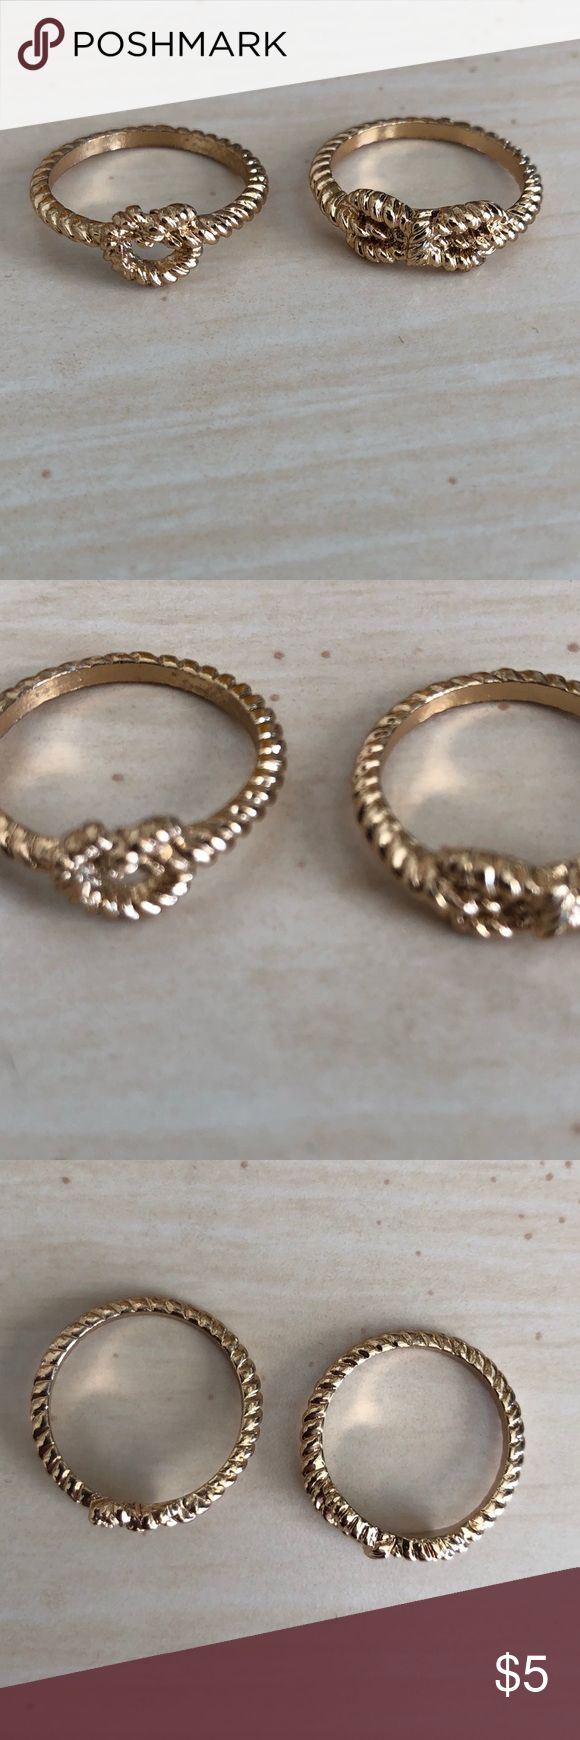 NWOT Aldo rings NWOT Aldo gold rope knot rings. Approx size 5.5-6. Both rings are the same size. Aldo Jewelry Rings